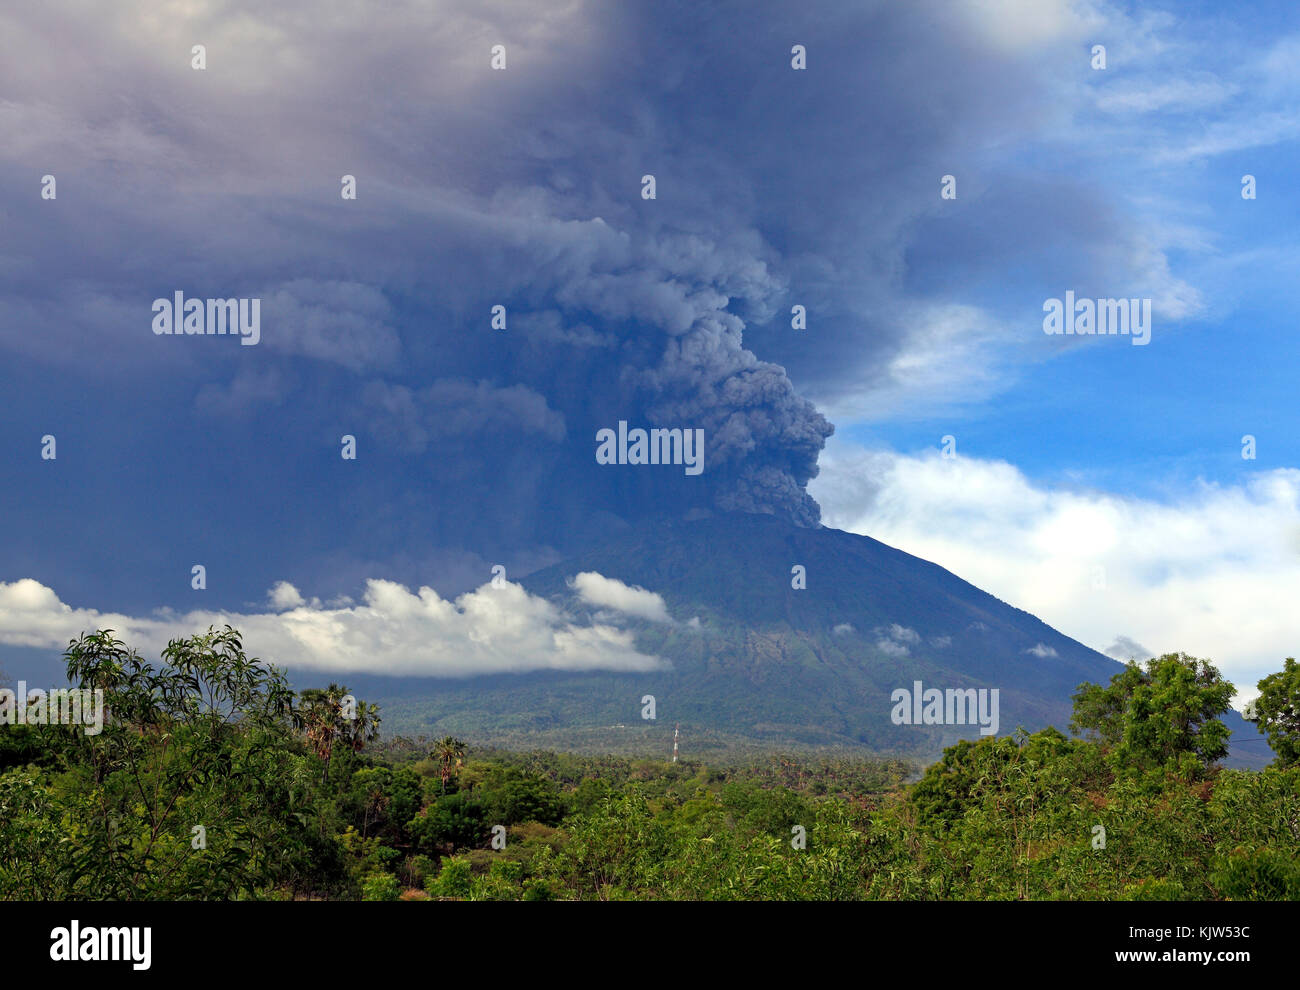 Mt Agung Volcano Eruption morning of 26 November 2017. Taken from Tulamben village, north east Bali, Indonesia Stock Photo